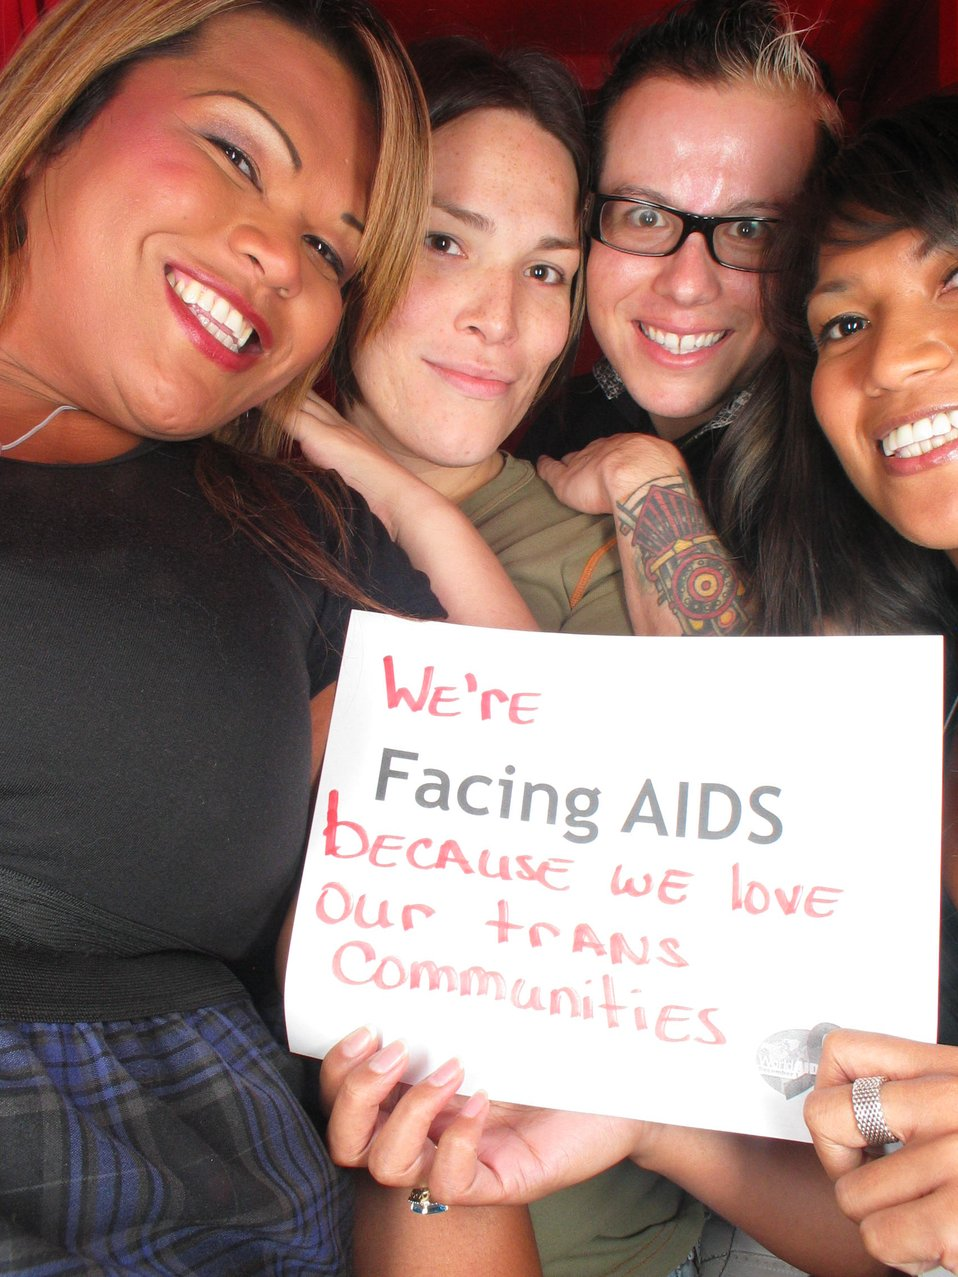 We're Facing AIDS because we love our trans communities